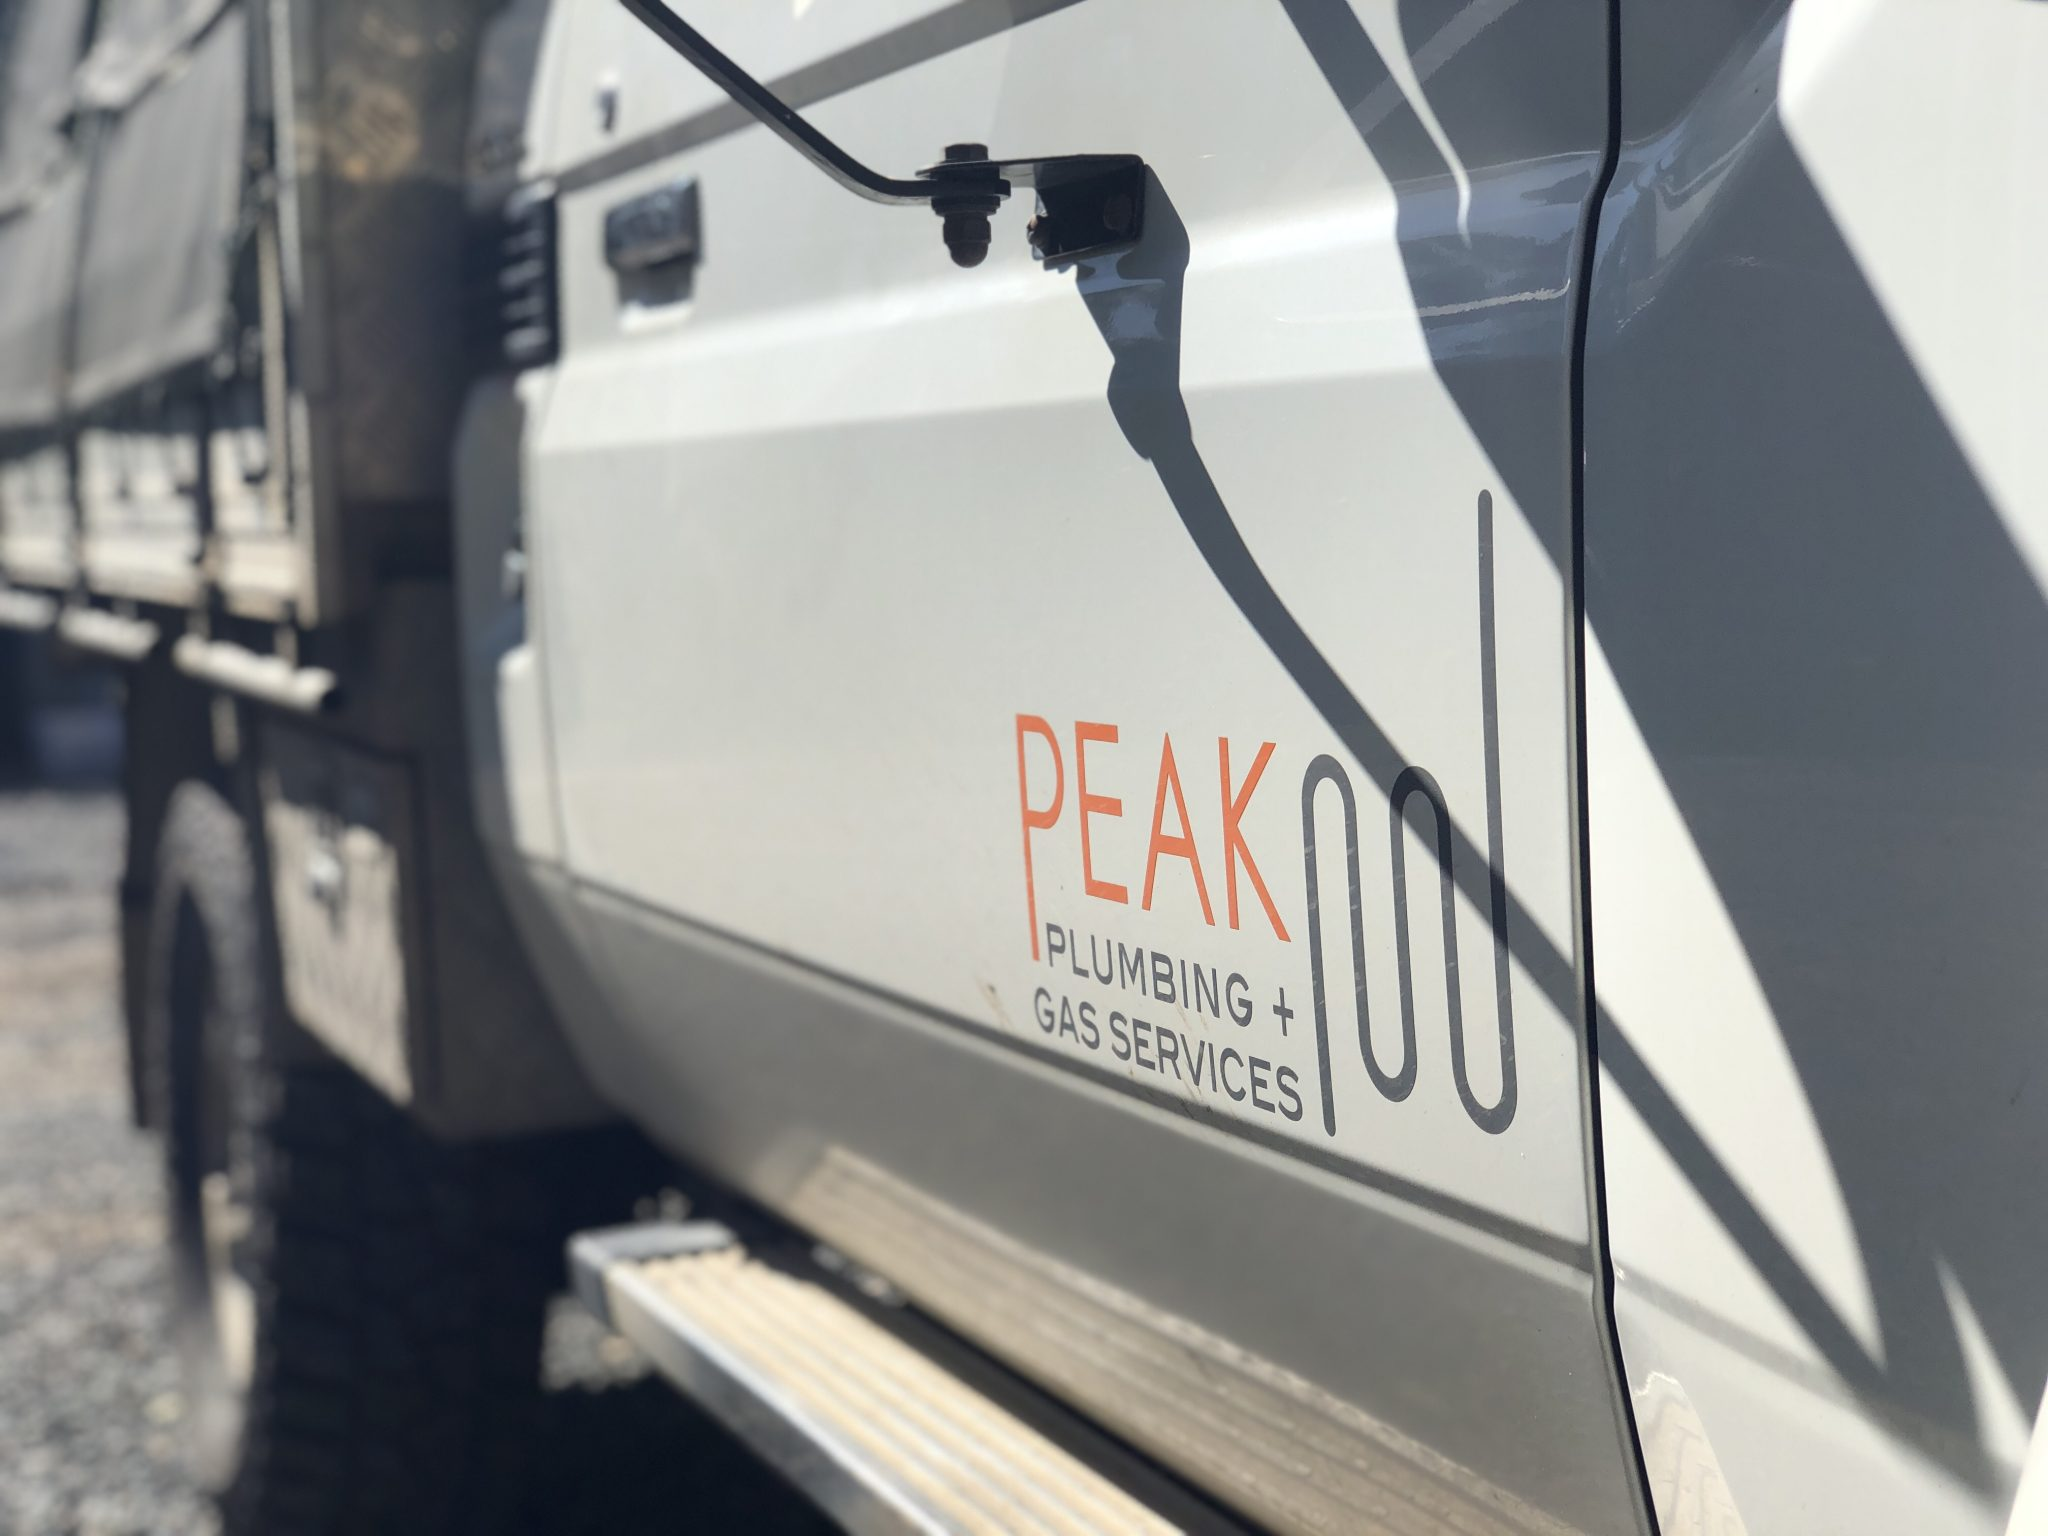 Peak Plumbing and Gas Services